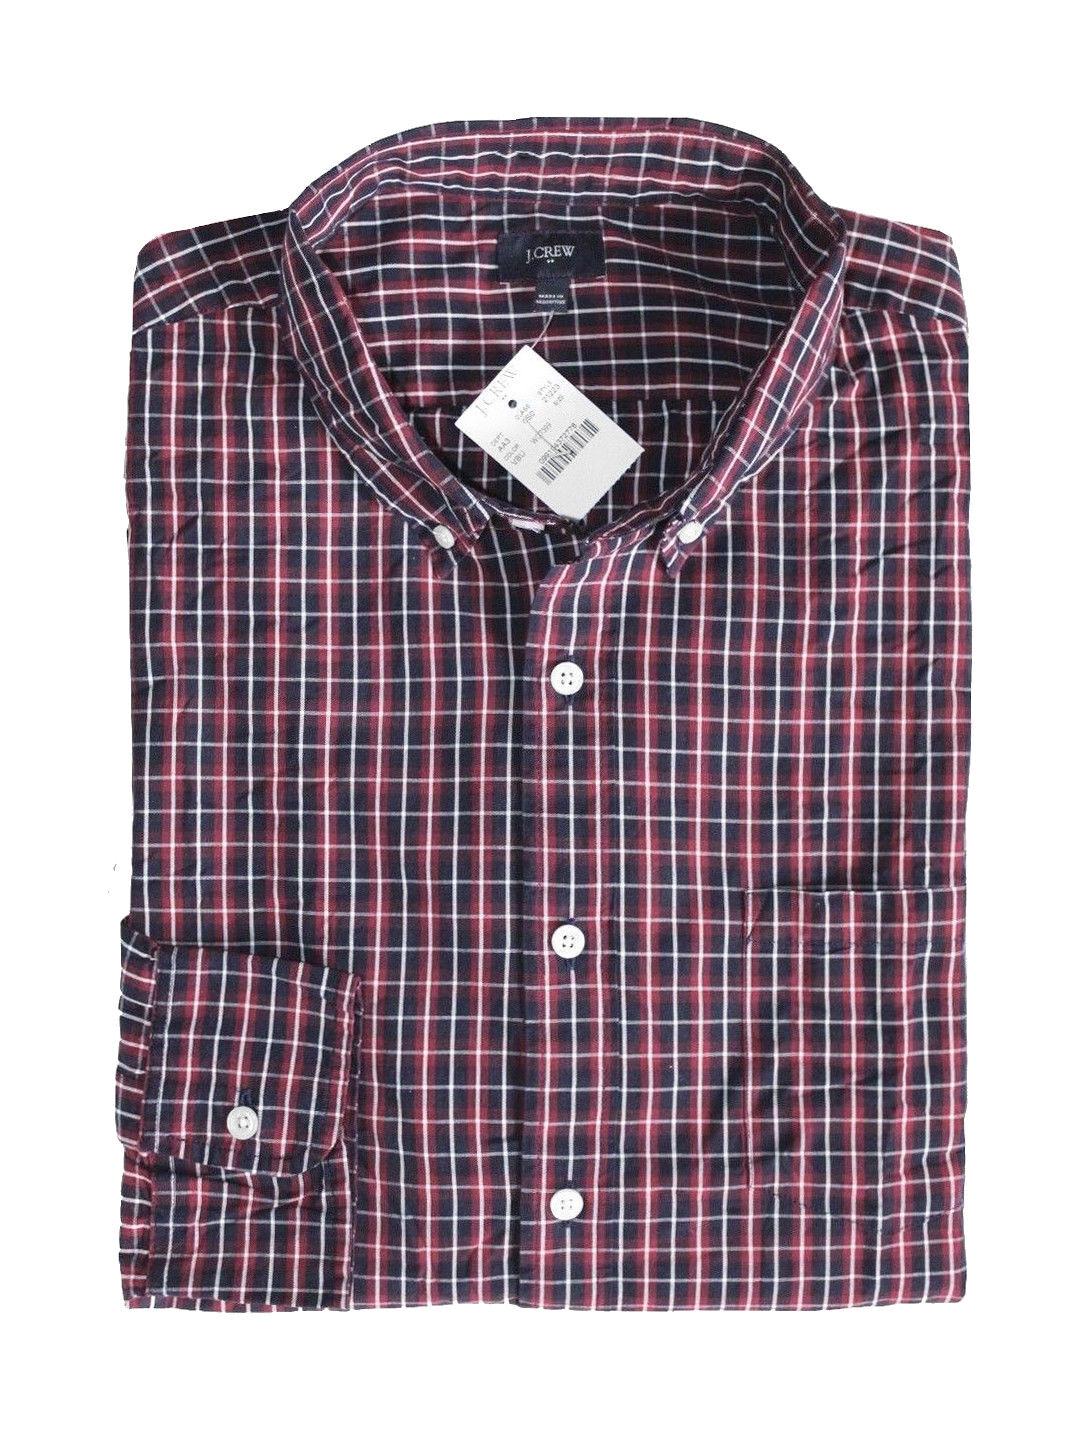 J.Crew Factory - Men's L - Regular Fit - Red Navy bluee Plaid Washed Cotton Shirt